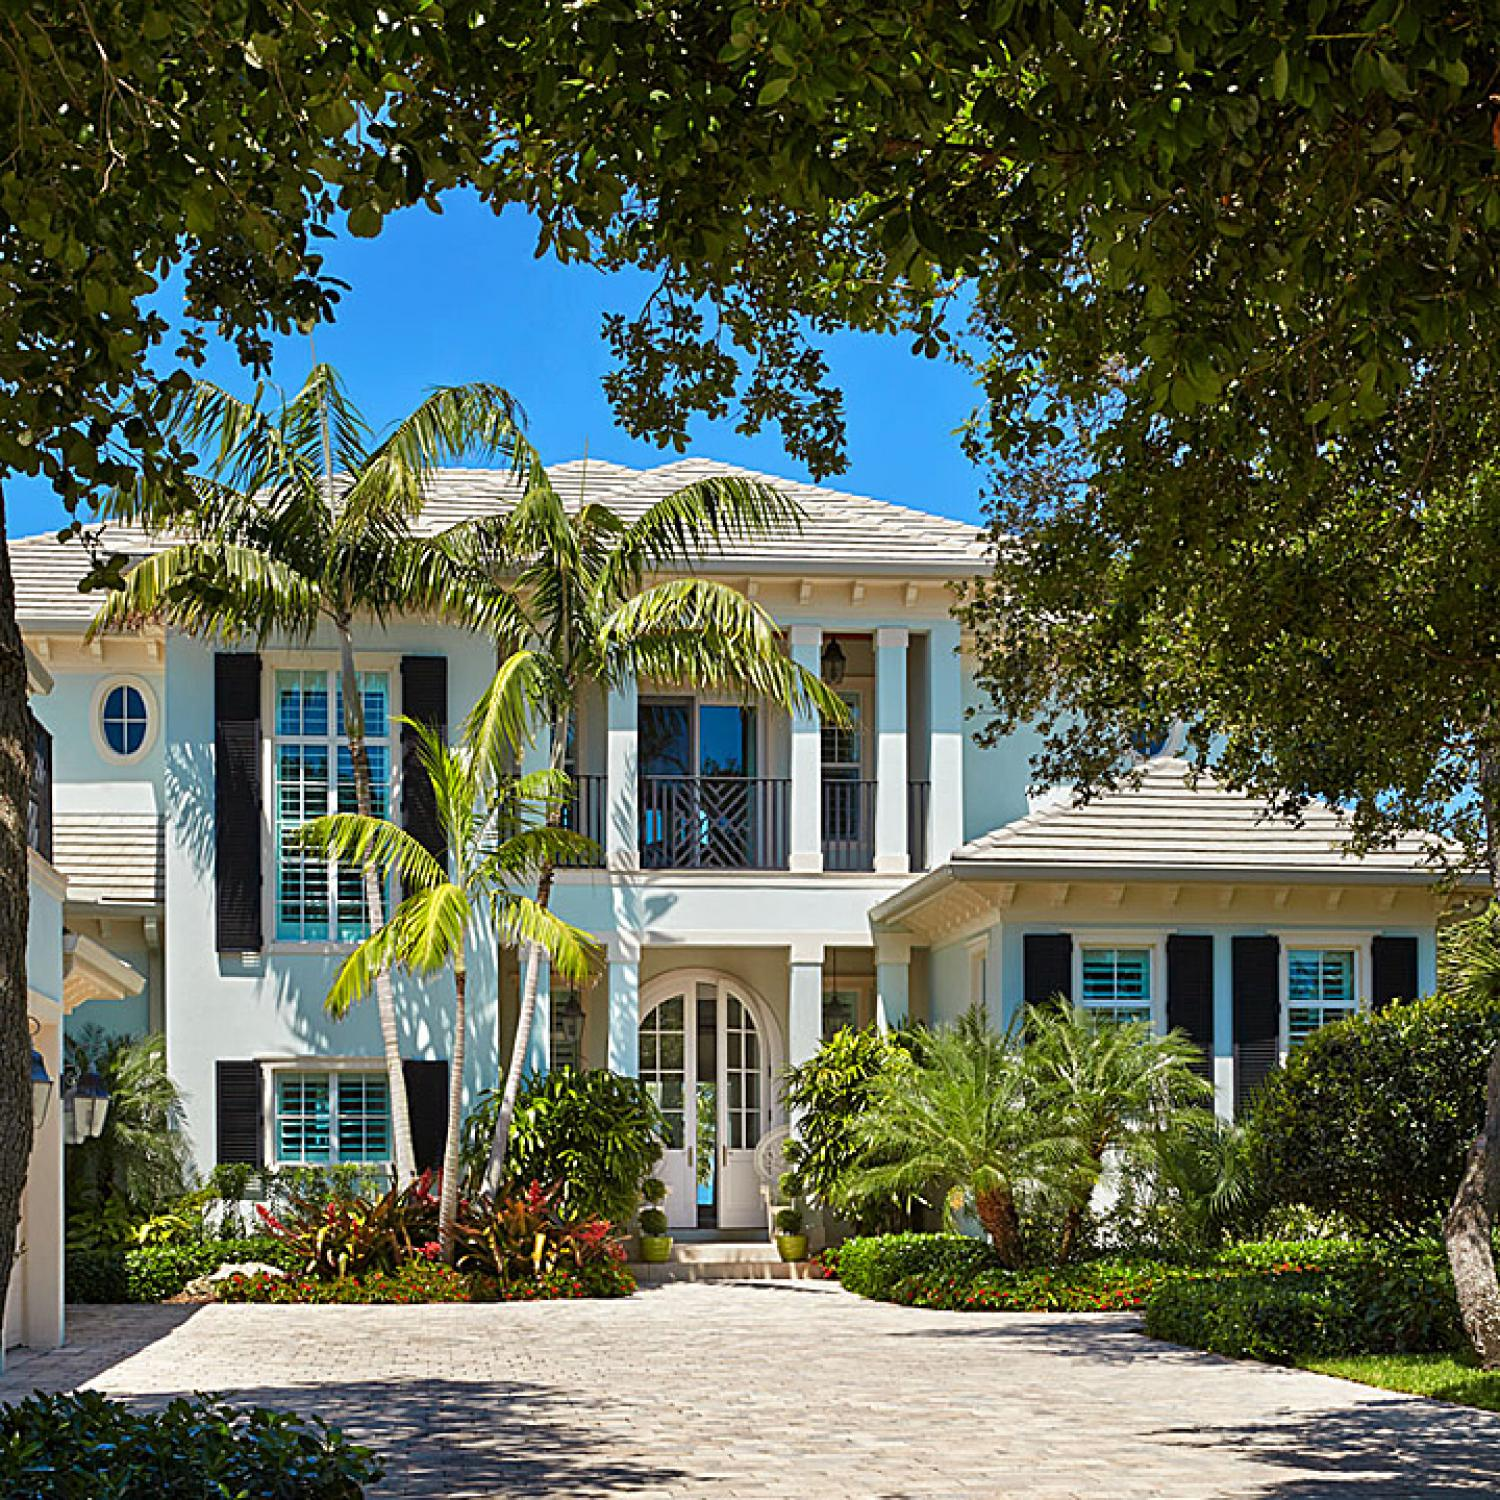 Colorful florida beach home designed by gary mcbournie for Beautiful homes in florida